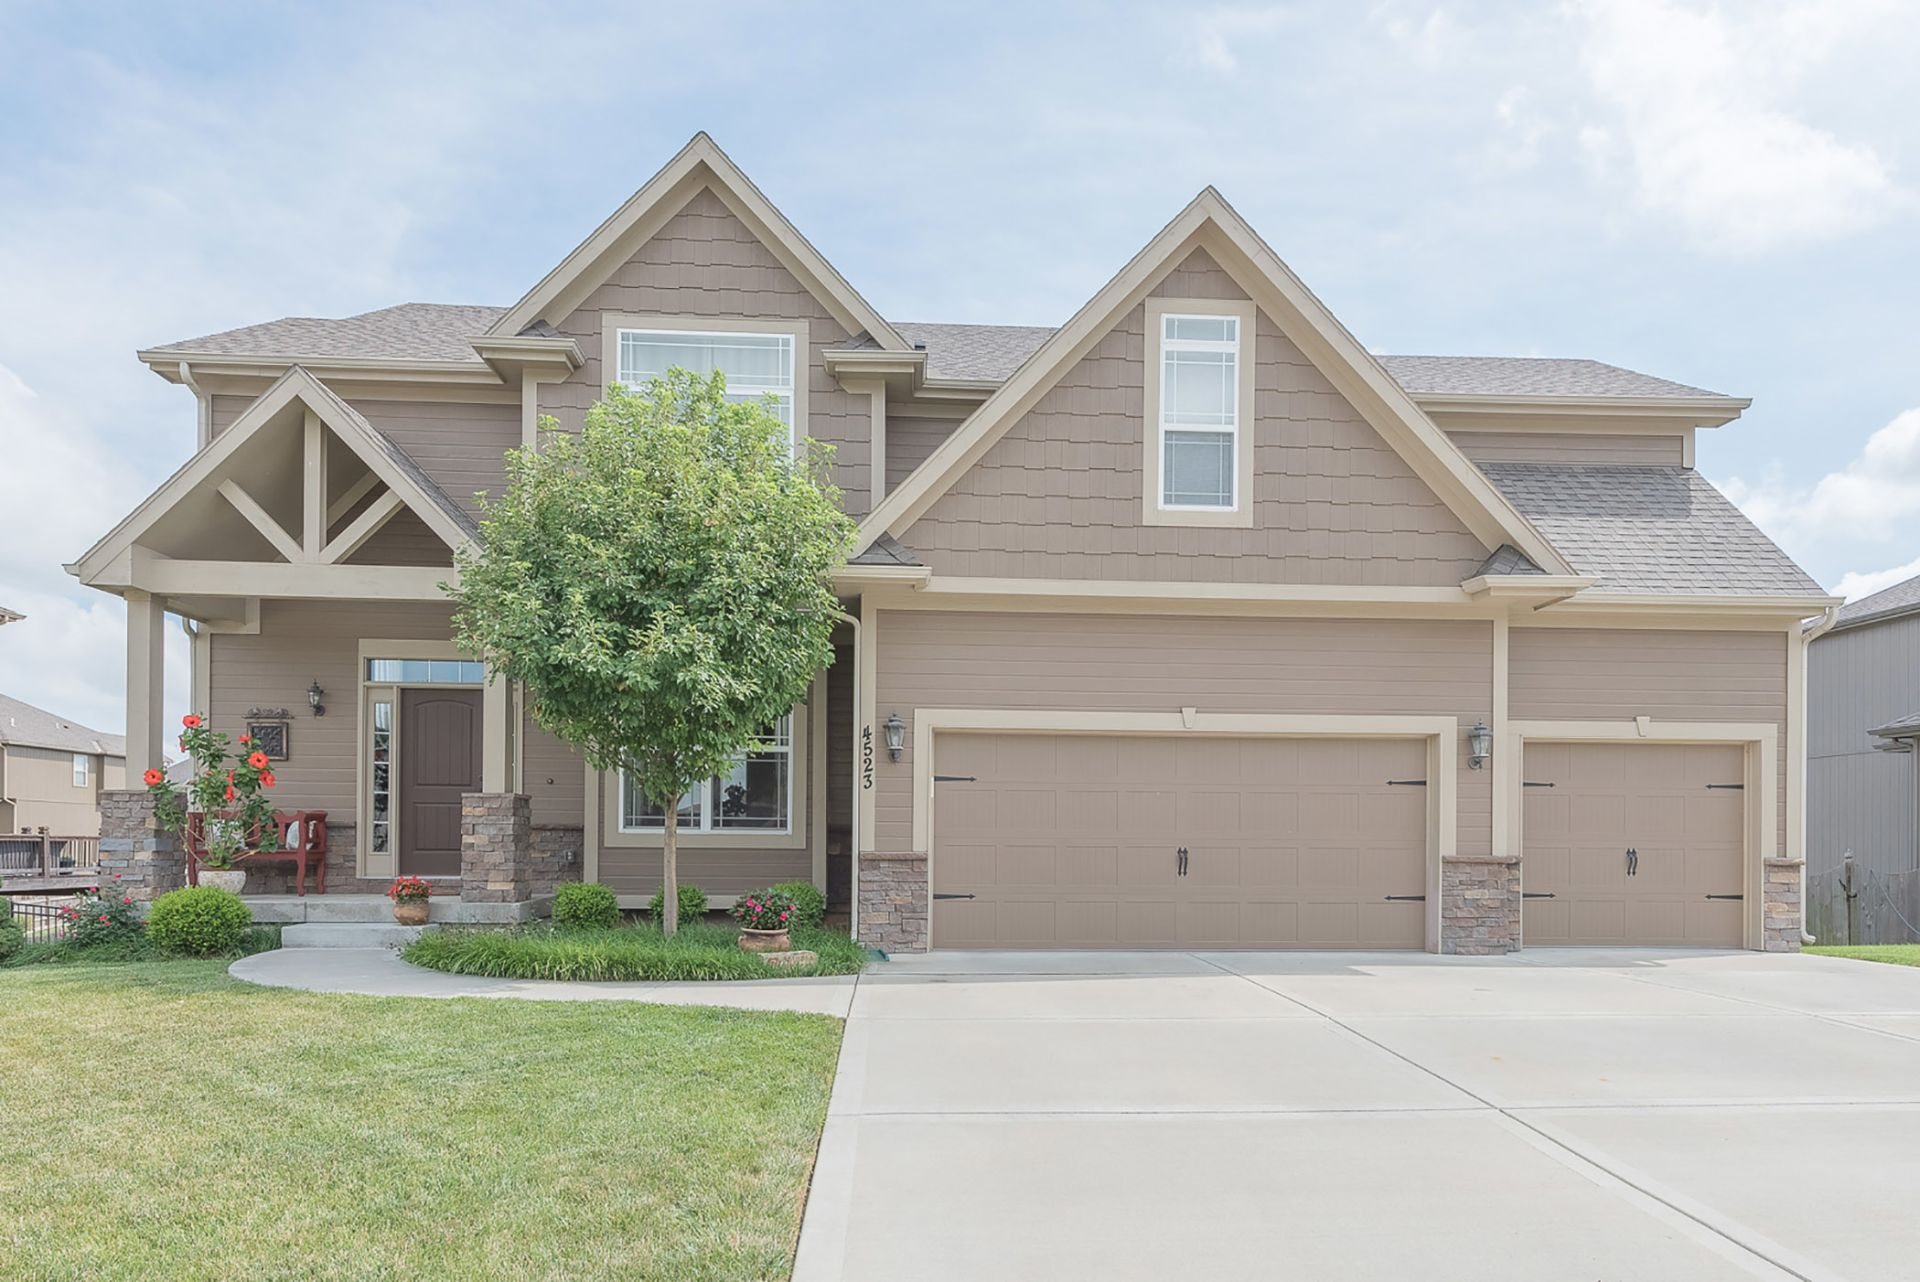 OPEN Sun 9/9, 1-3pm! Beautiful Move-In Ready 4 Bedroom Home!